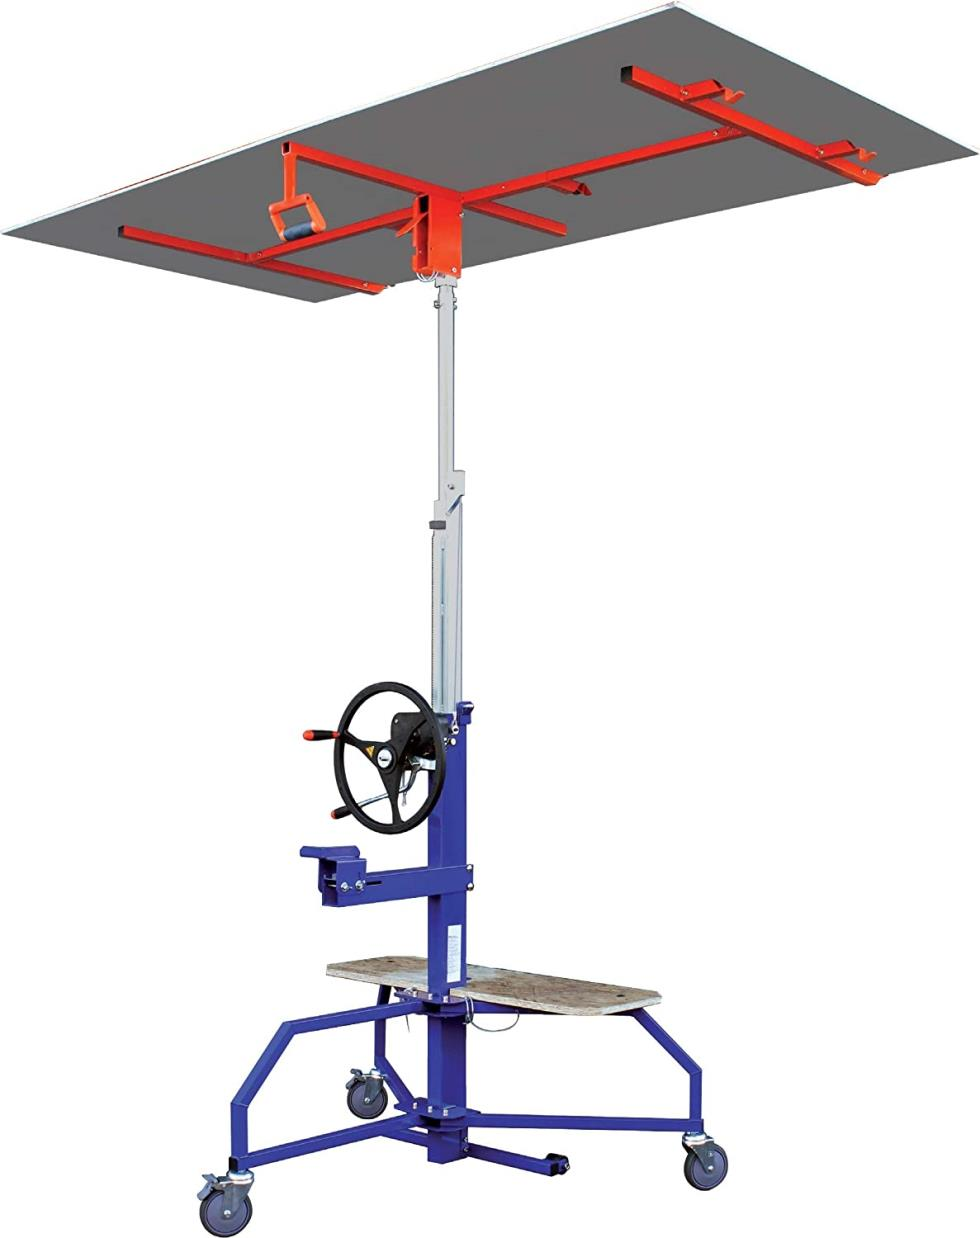 PANEL / DRYWALL LIFT - UP TO 20'